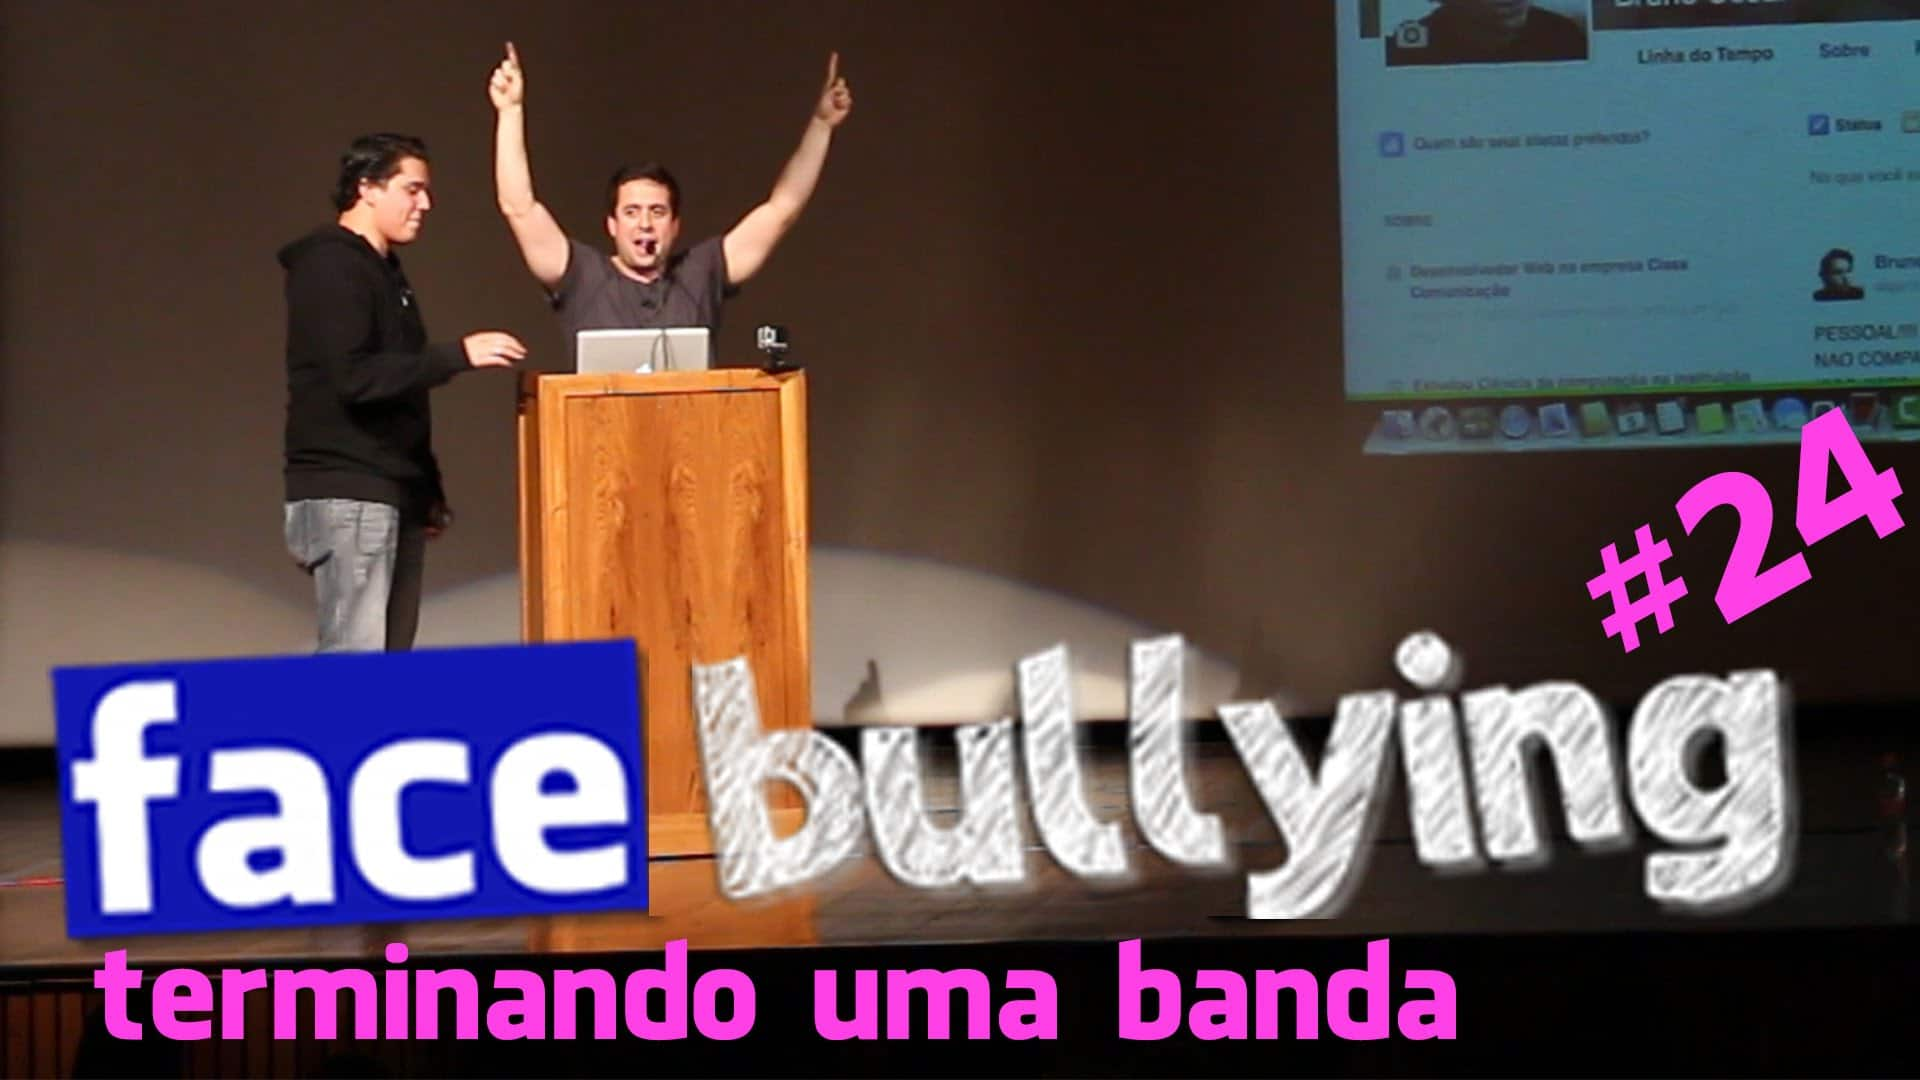 Facebullying – Terminando uma banda